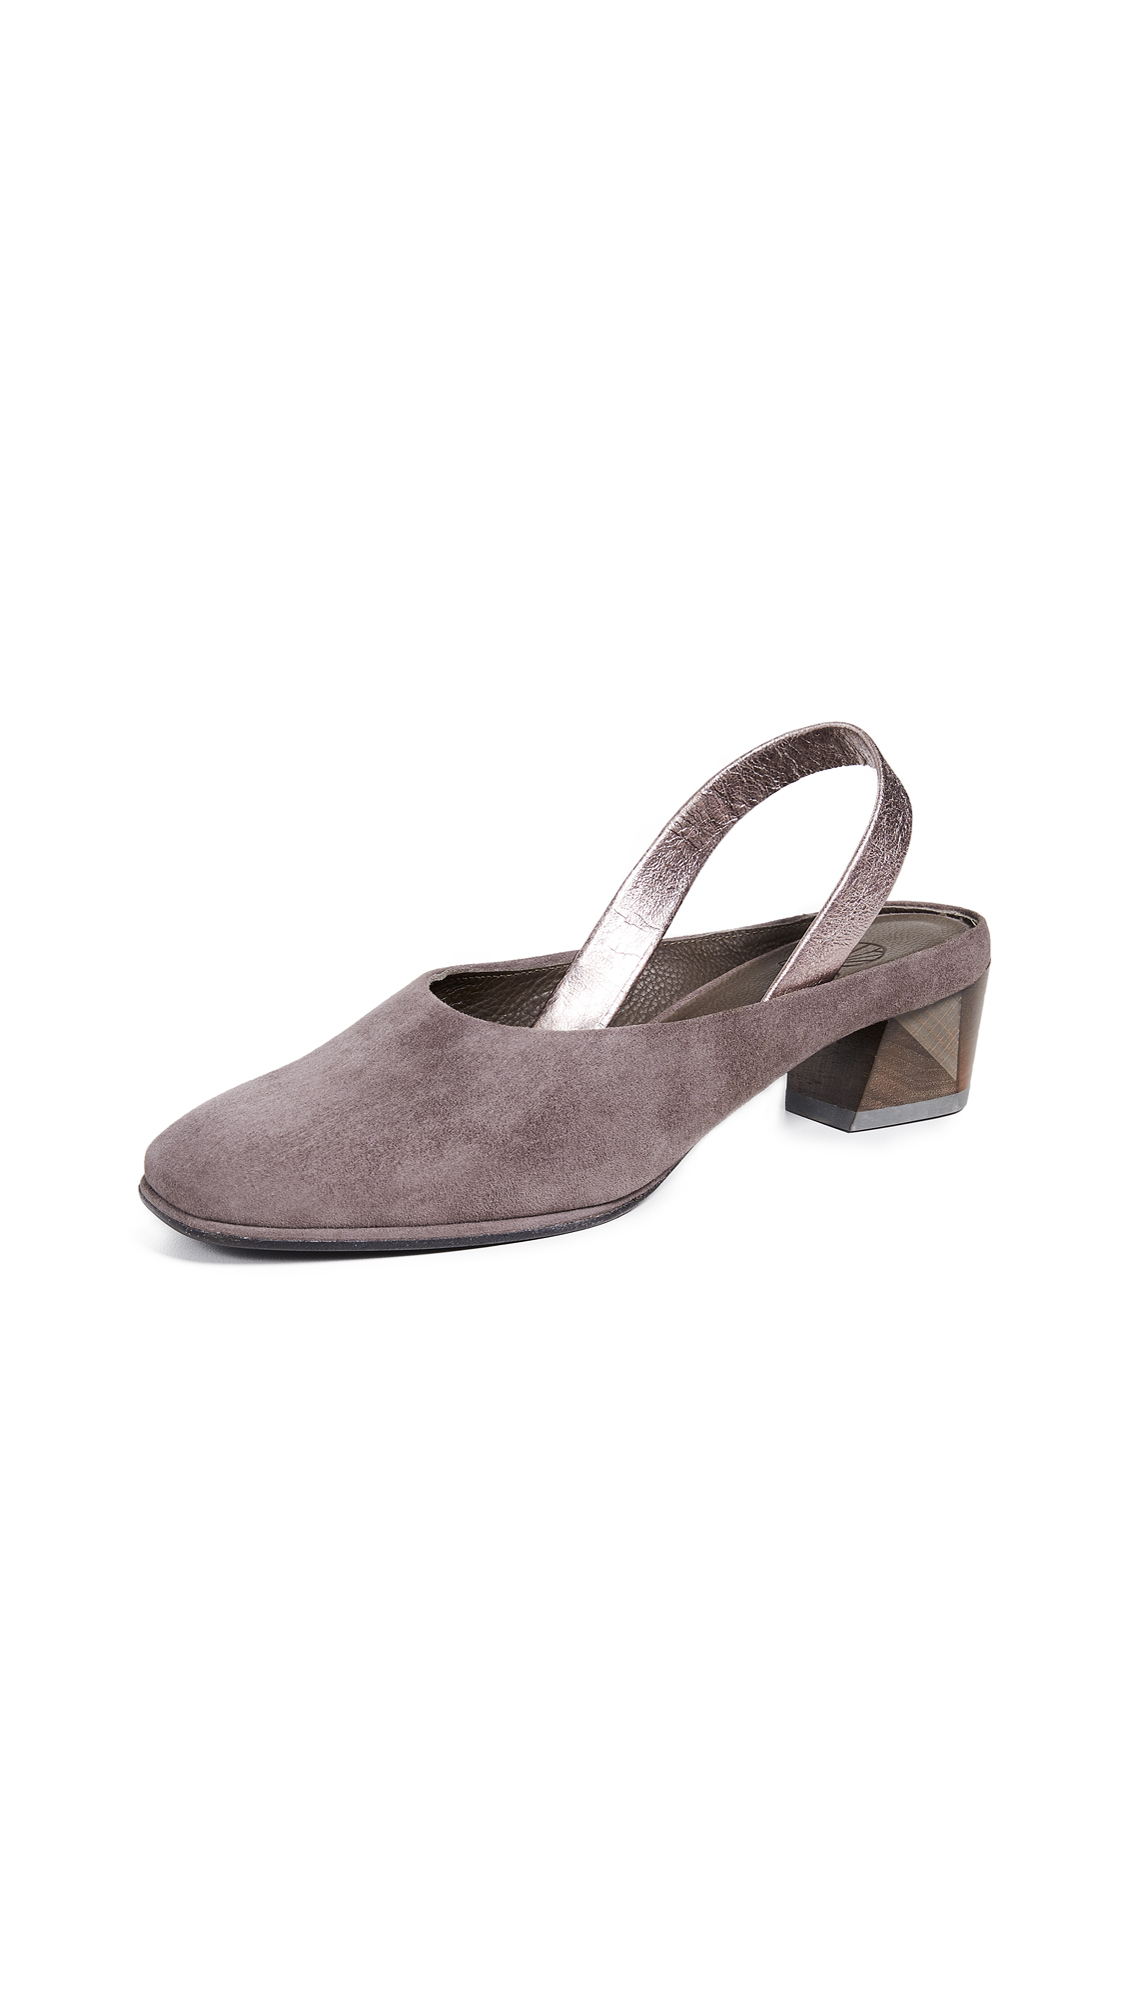 Coclico Shoes Kiko Slingback Pumps - Grey/Purple/Metallic